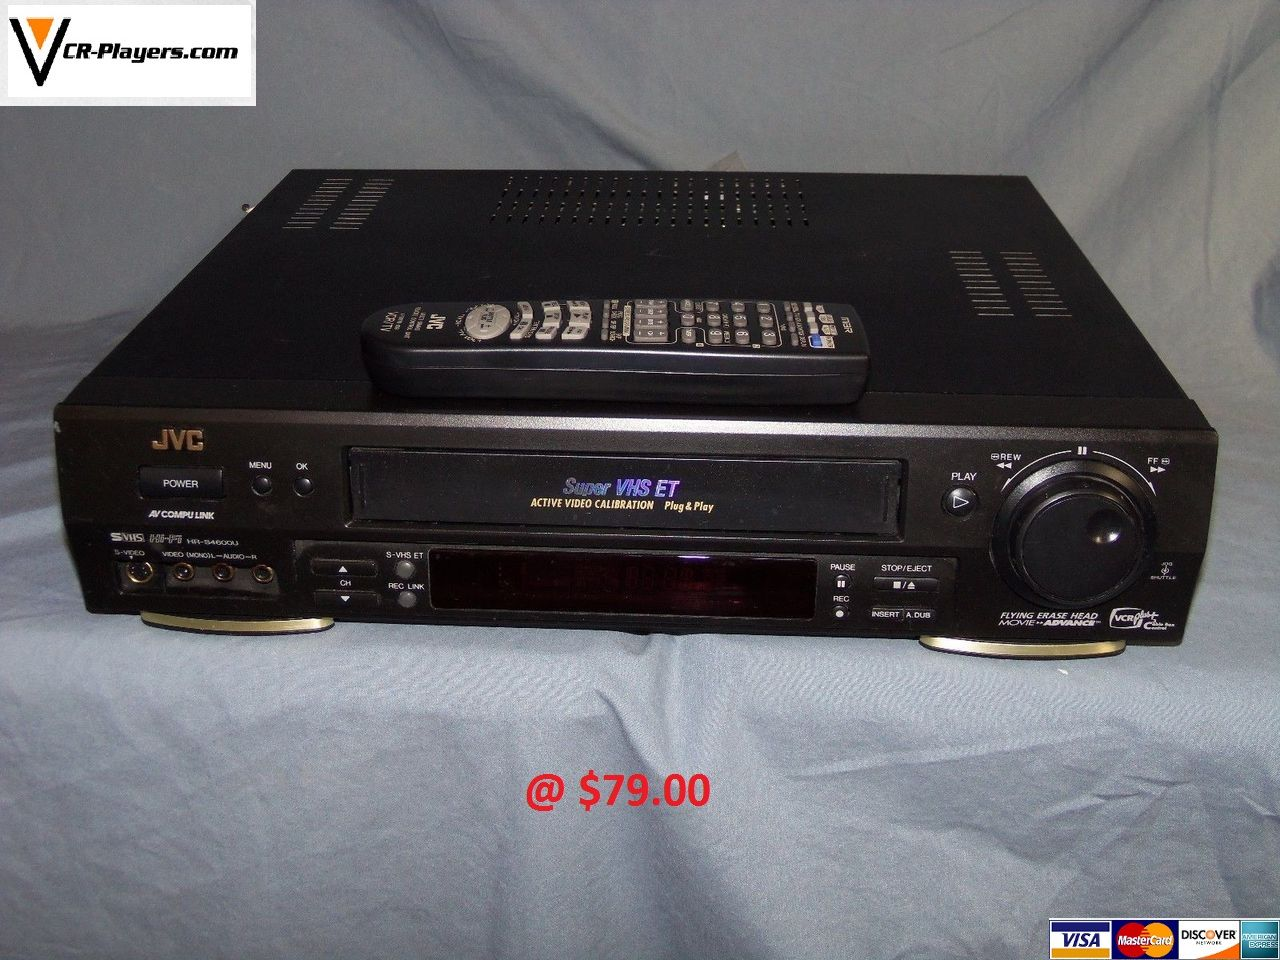 panasonic dvd vhs recorder instructions 1 manuals and user guides rh mountainwatch co panasonic dmr-ez49v service manual panasonic dmr ez48v manual